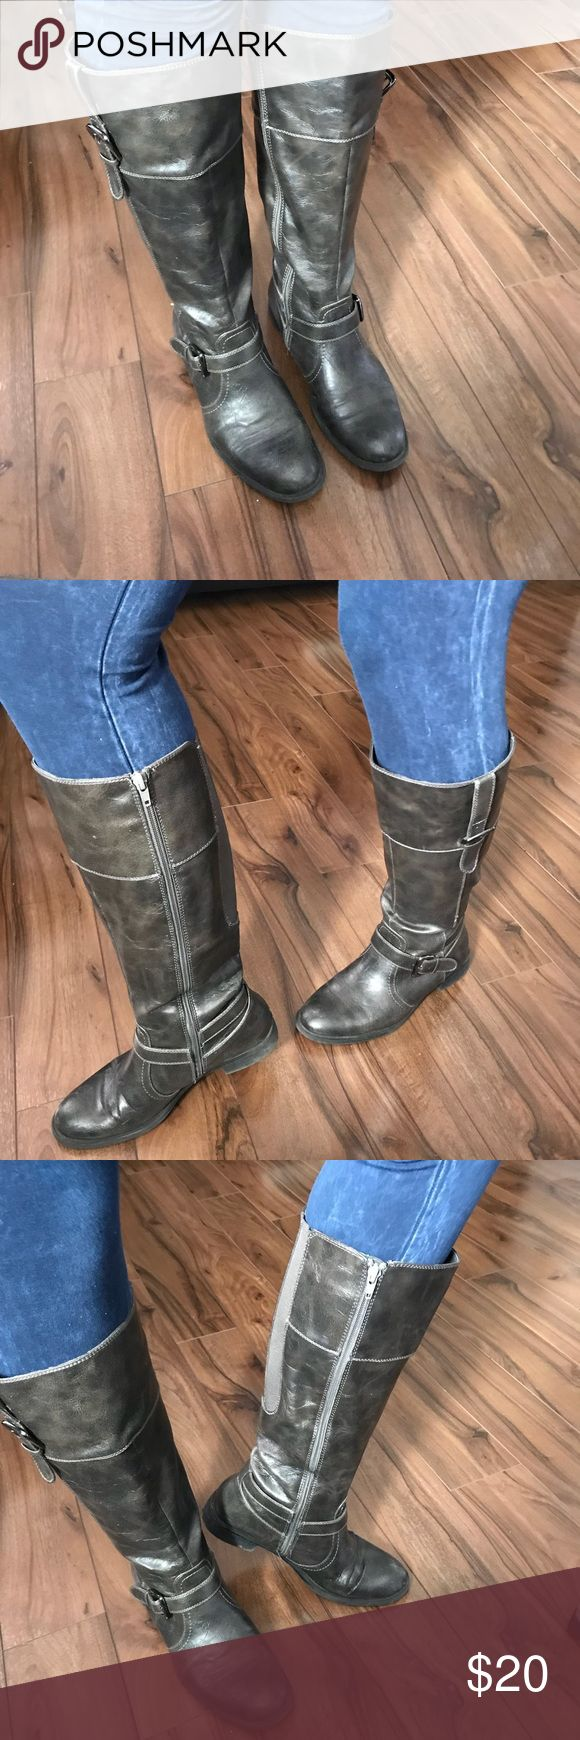 Very nice brown / black boots These boots are use with lots of life left in them. Relativity Re morena size 10 med.  Man made materials. Elastic in the back around the calf. In different lighting they almost look like a Charco black. 1 inch heal Relativity Shoes Heeled Boots